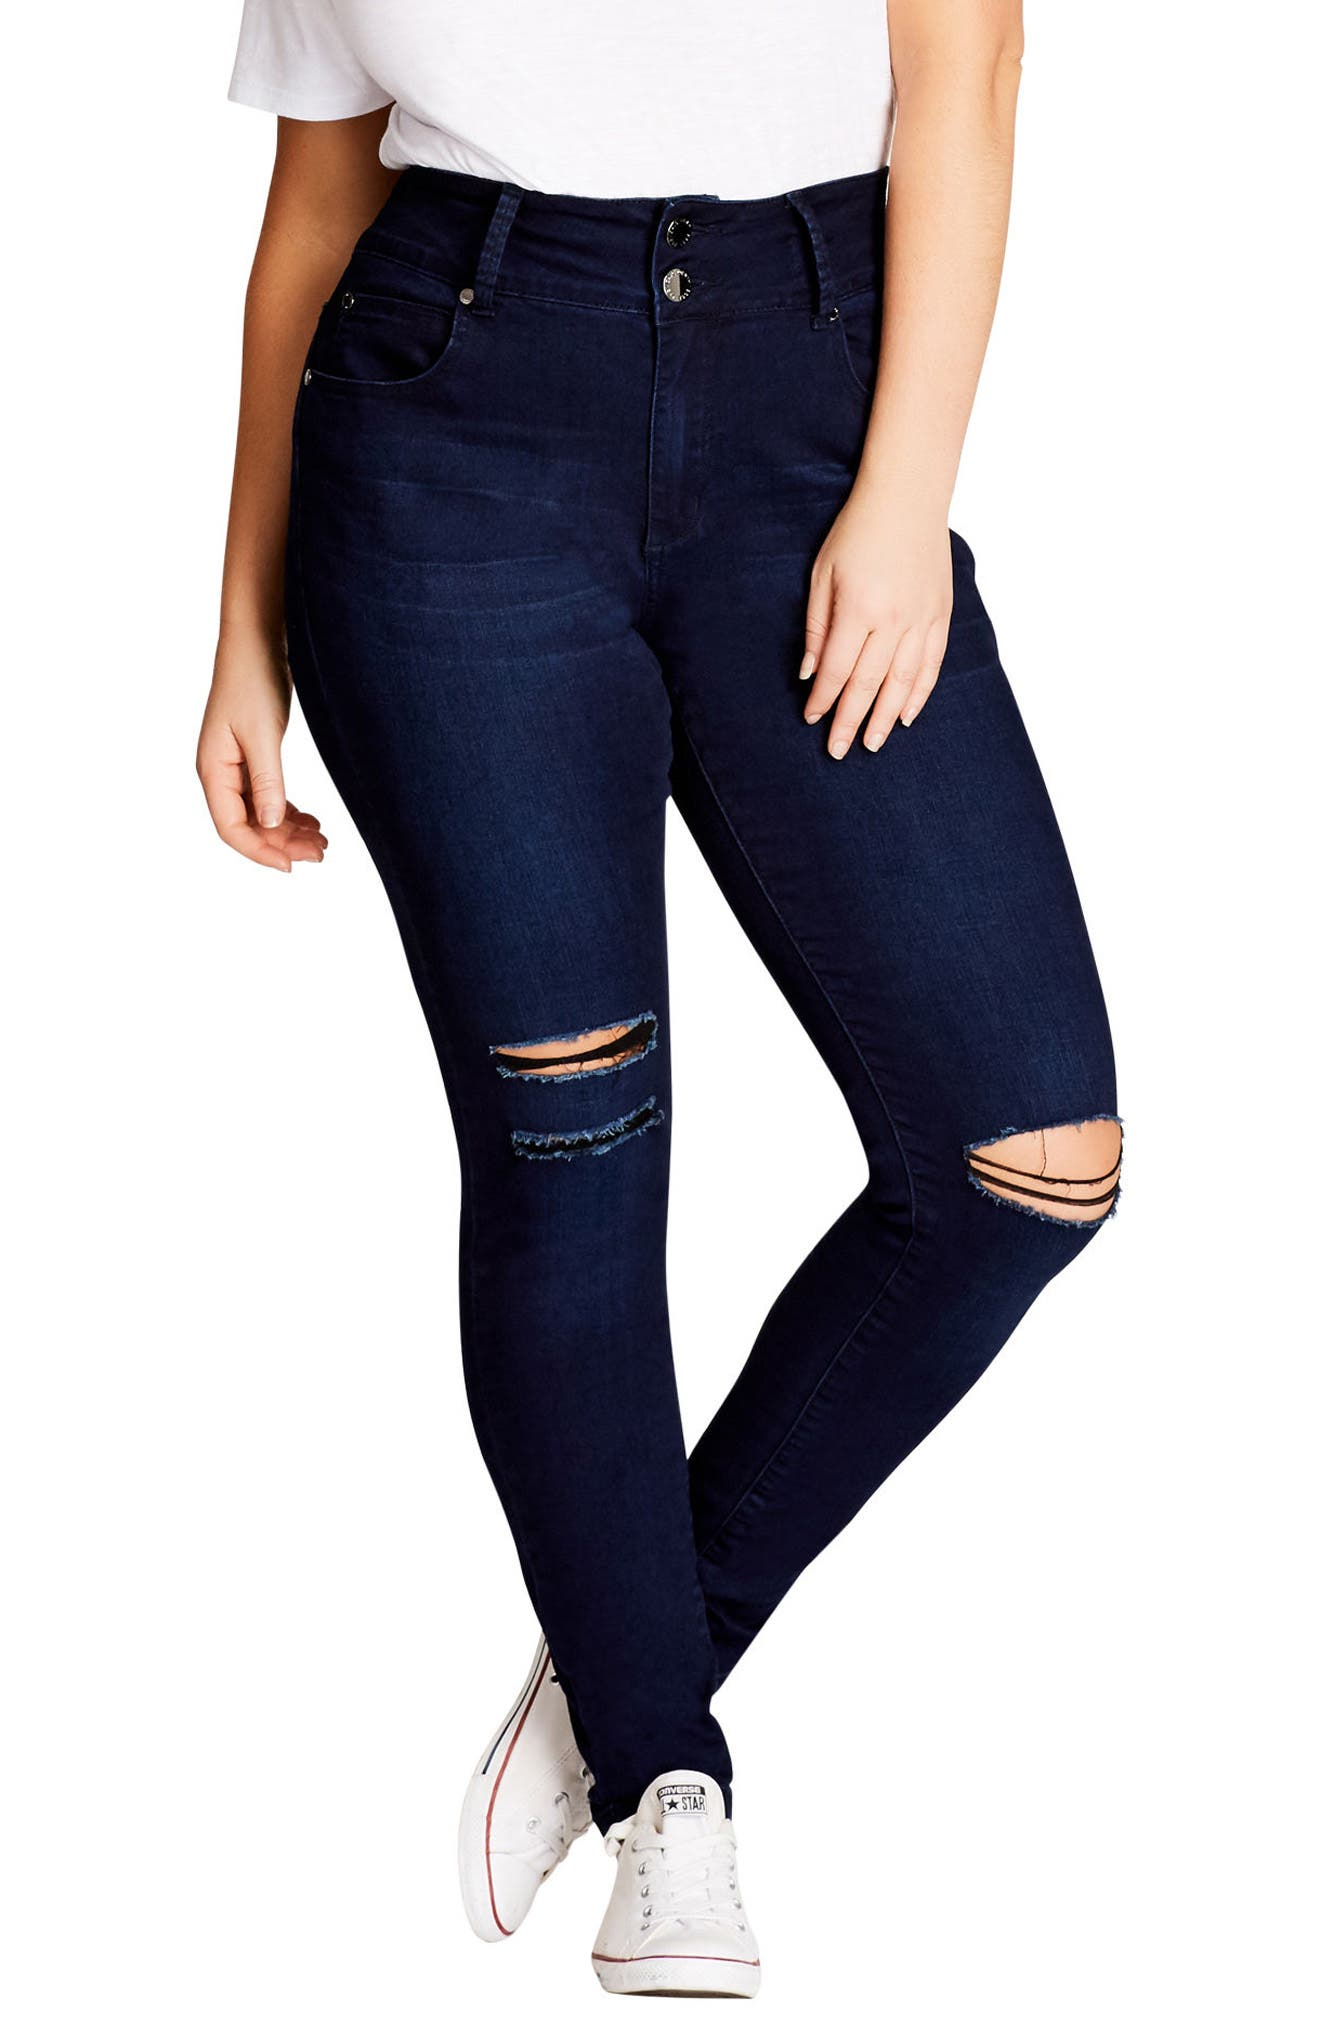 Alternate Image 1 Selected - City Chic Harley Ripped High Rise Skinny Jeans (Plus Size)